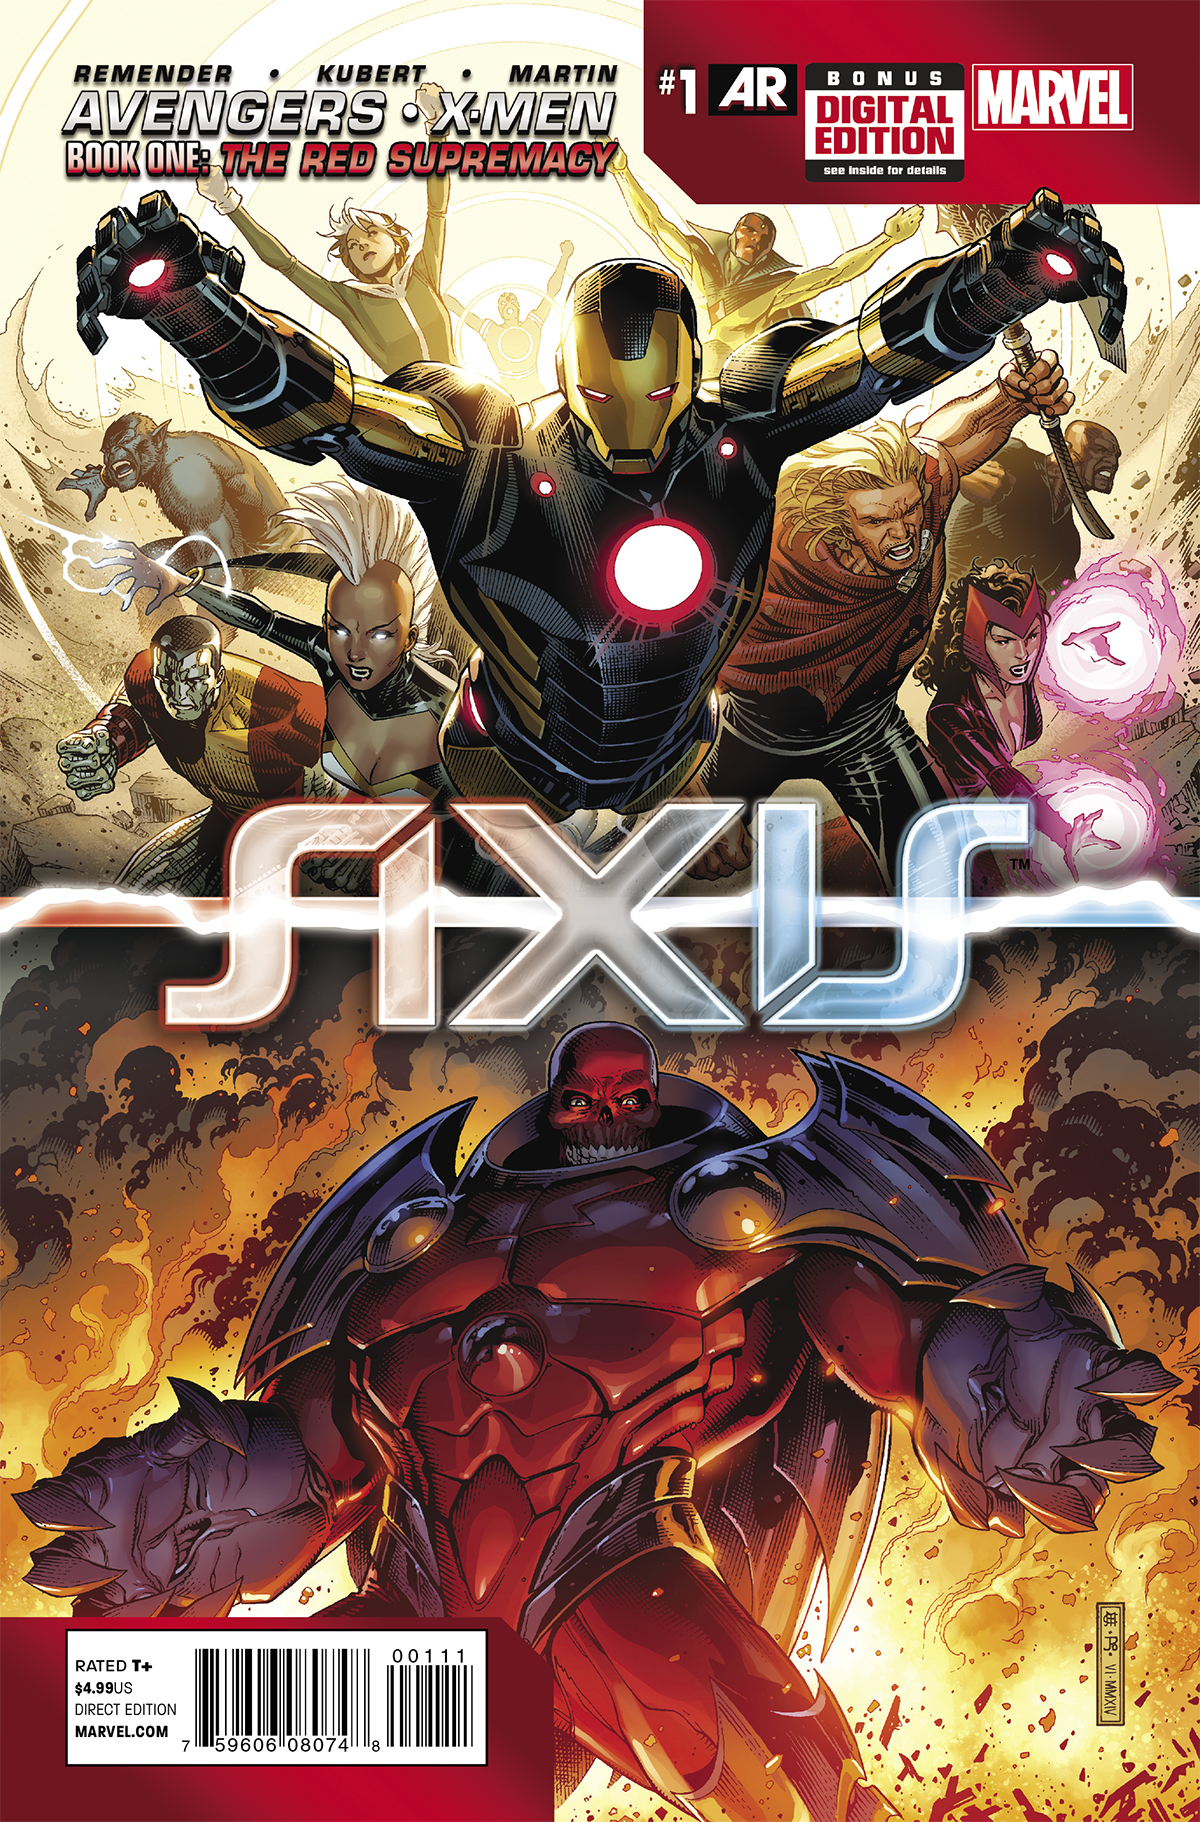 Avengers X-Men Axis Red Supremacy